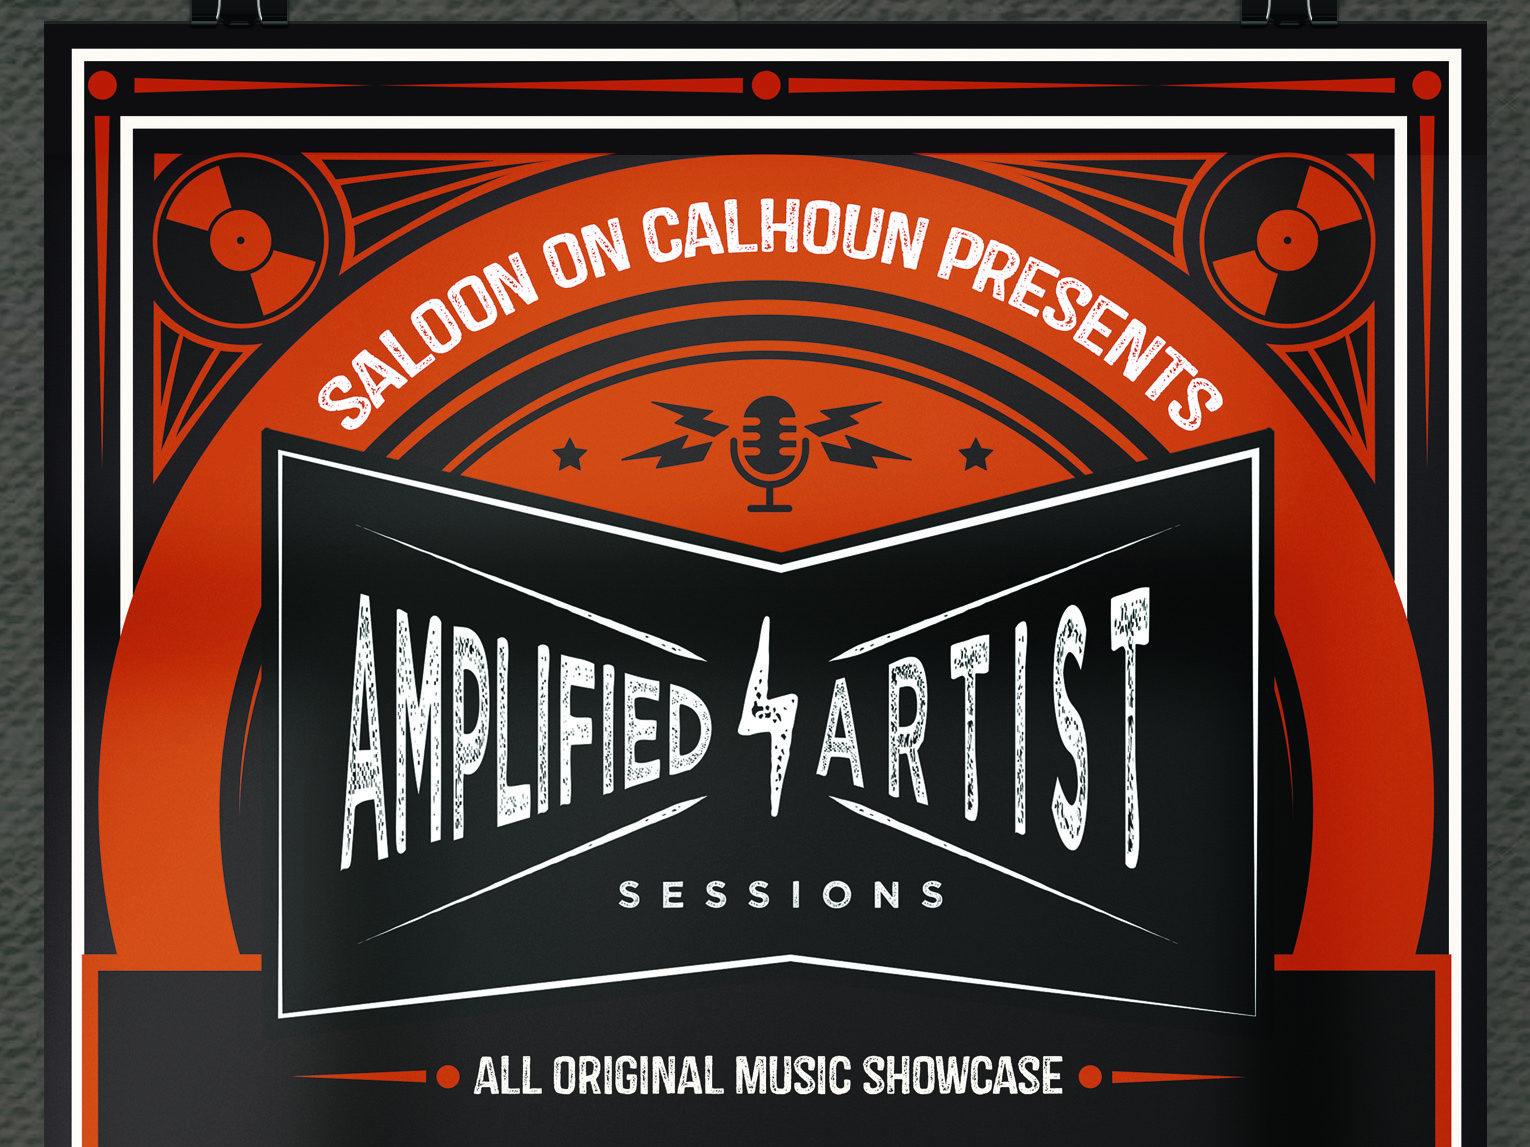 Amplified Artist Sessions Poster texture music poster